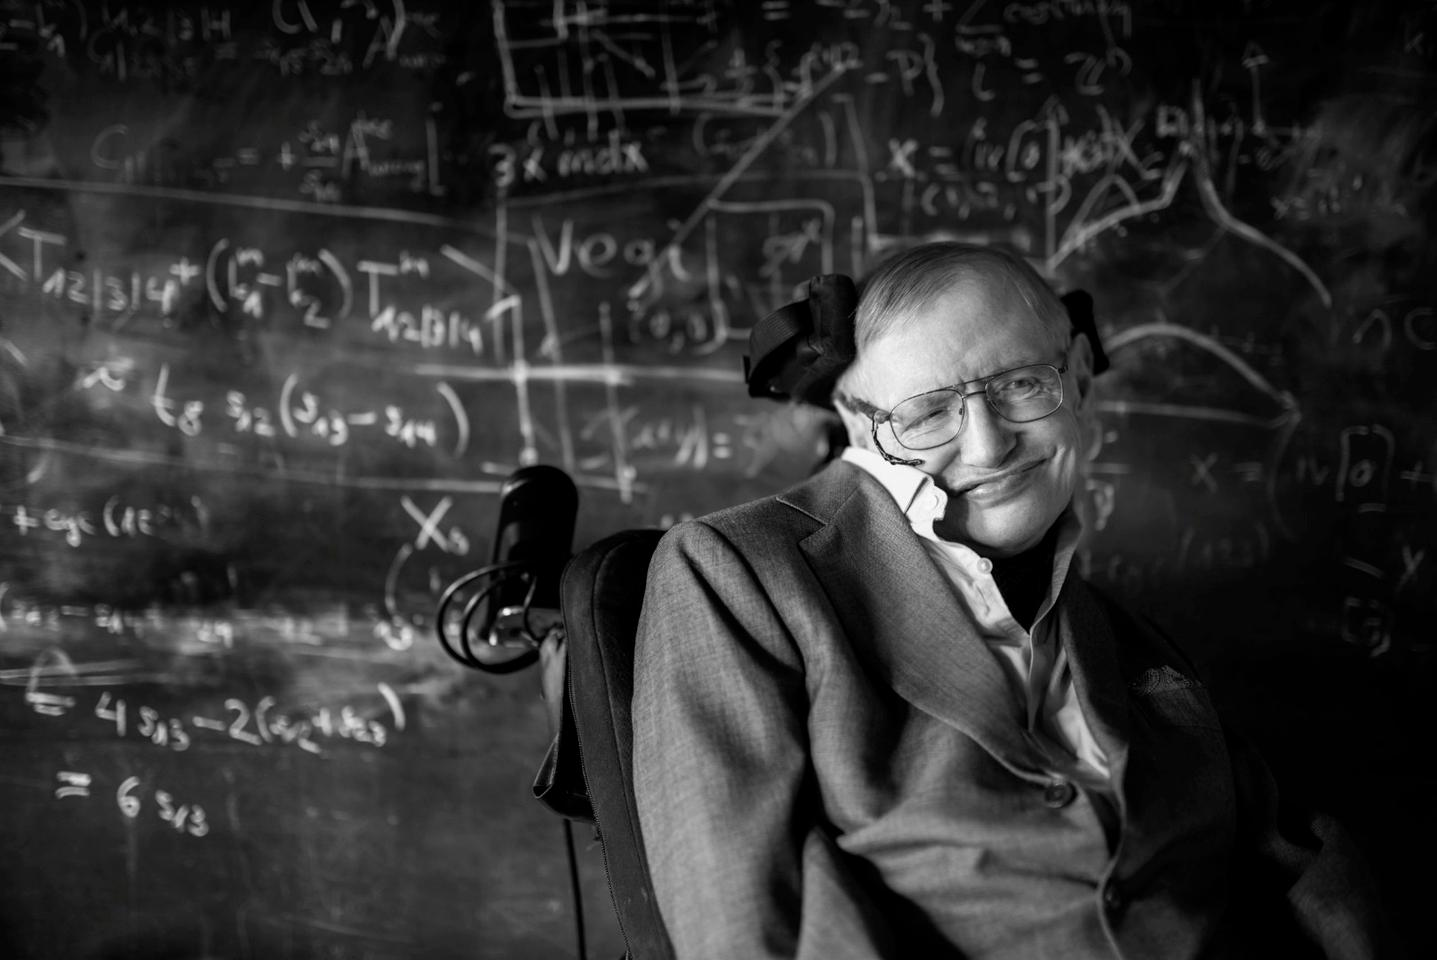 Renowned physicist Stephen Hawking passed away earlier this year, and now his final paper, describing a new theory on the origin of the universe, has been published